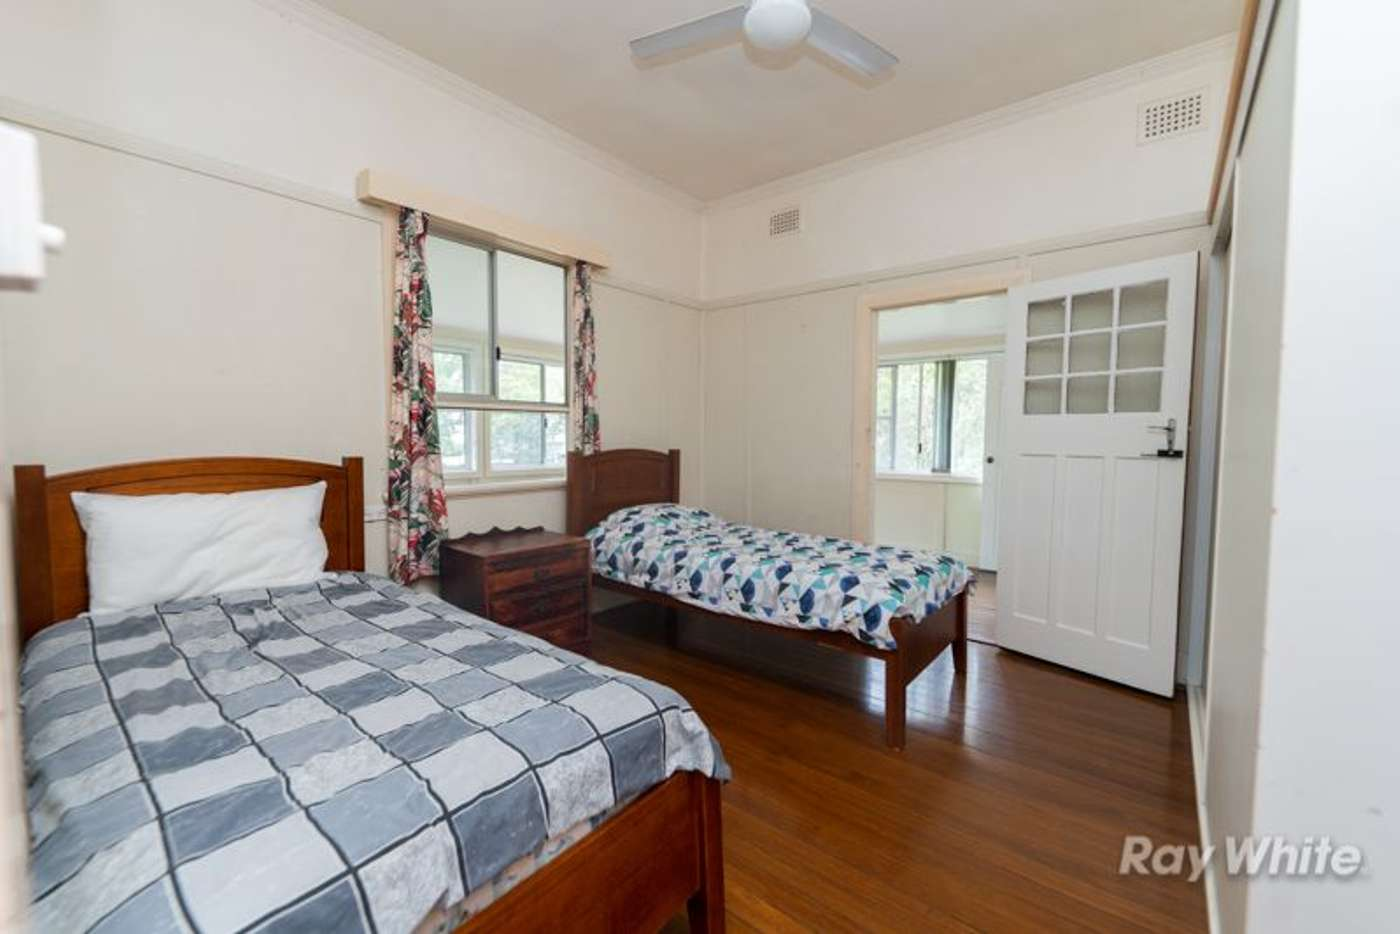 Sixth view of Homely house listing, 63 Wharf Street, South Grafton NSW 2460